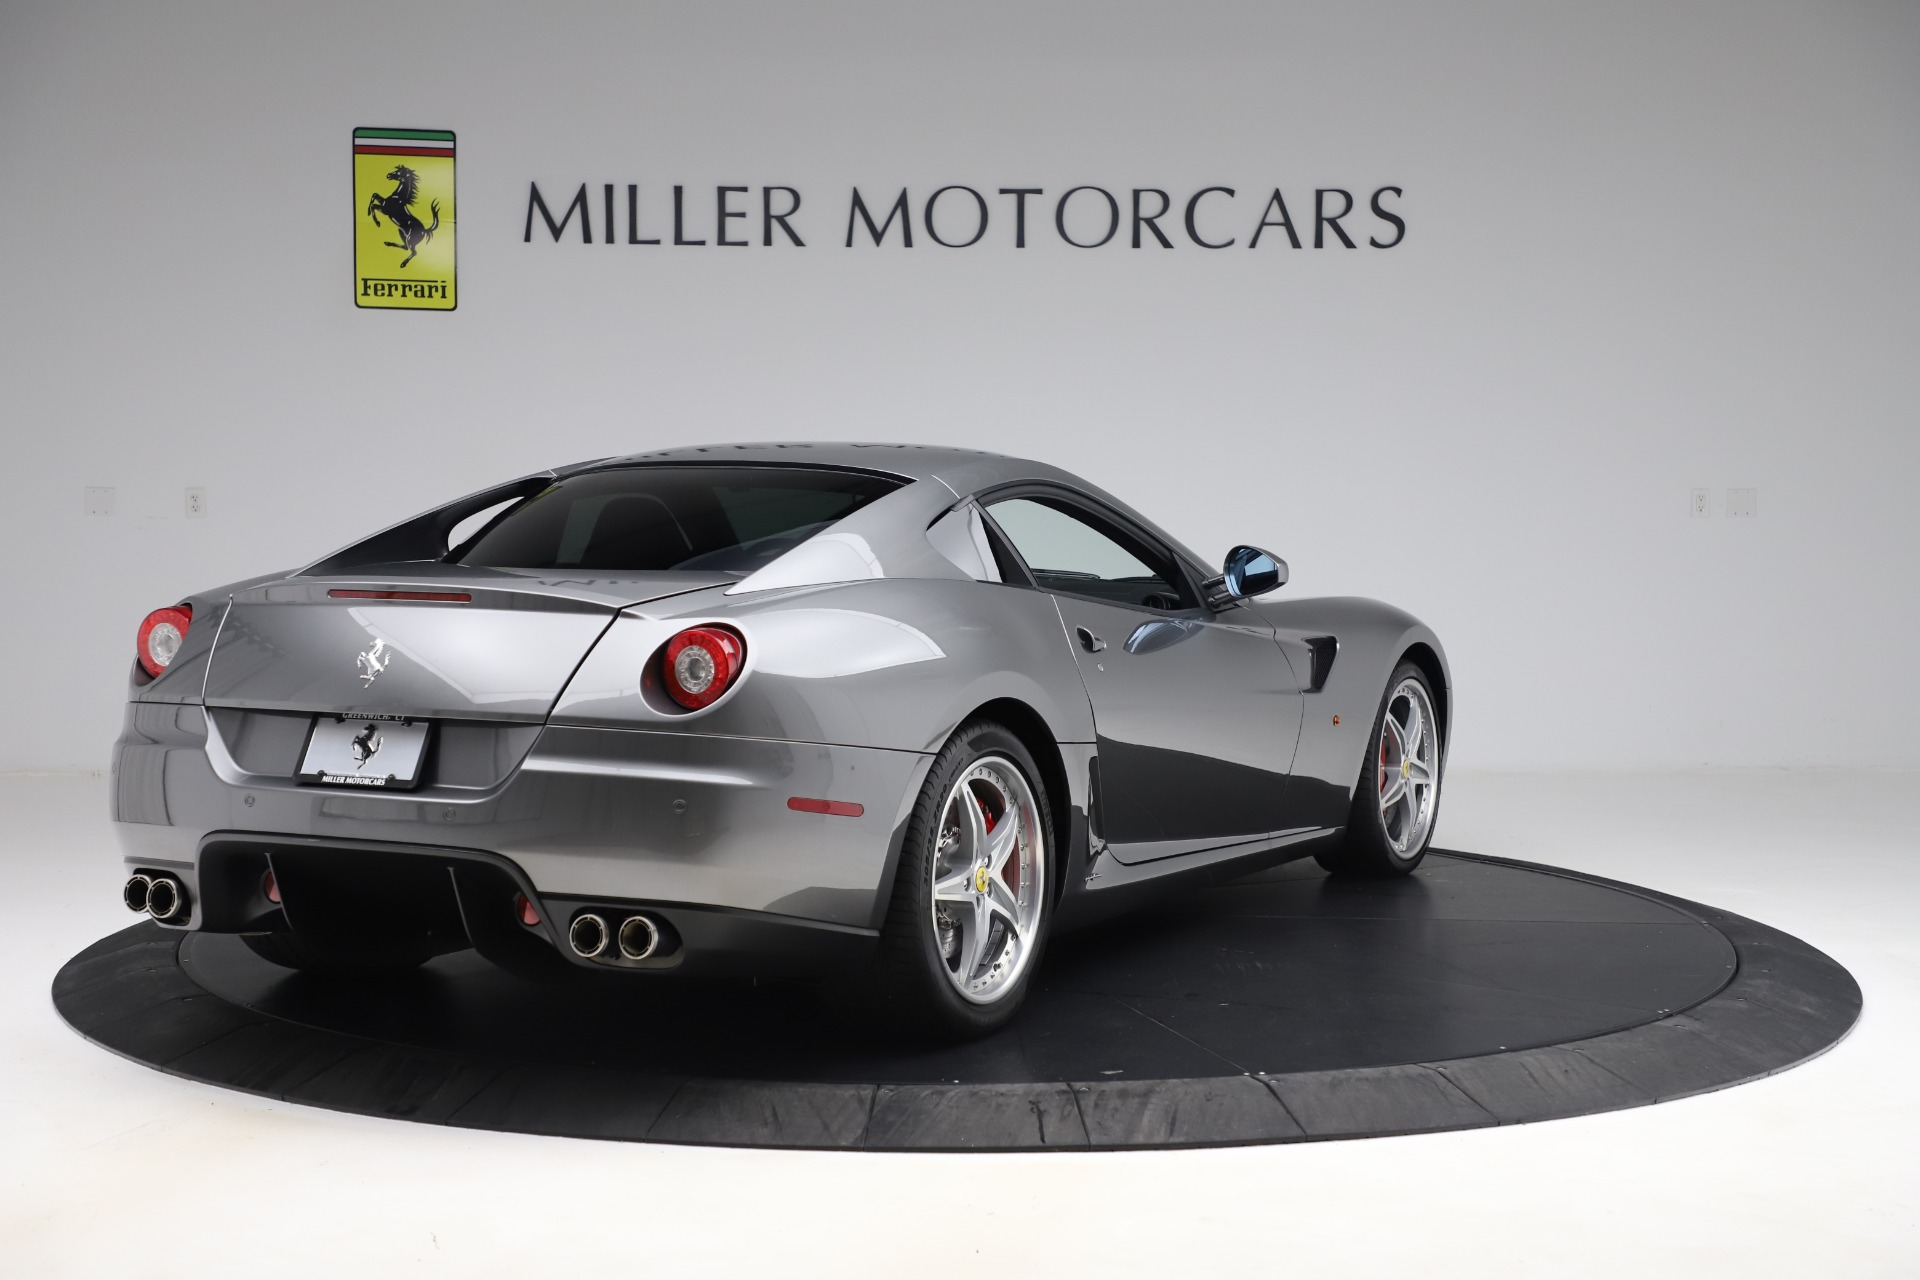 Used 2010 Ferrari 599 GTB Fiorano HGTE For Sale In Westport, CT 3544_p7